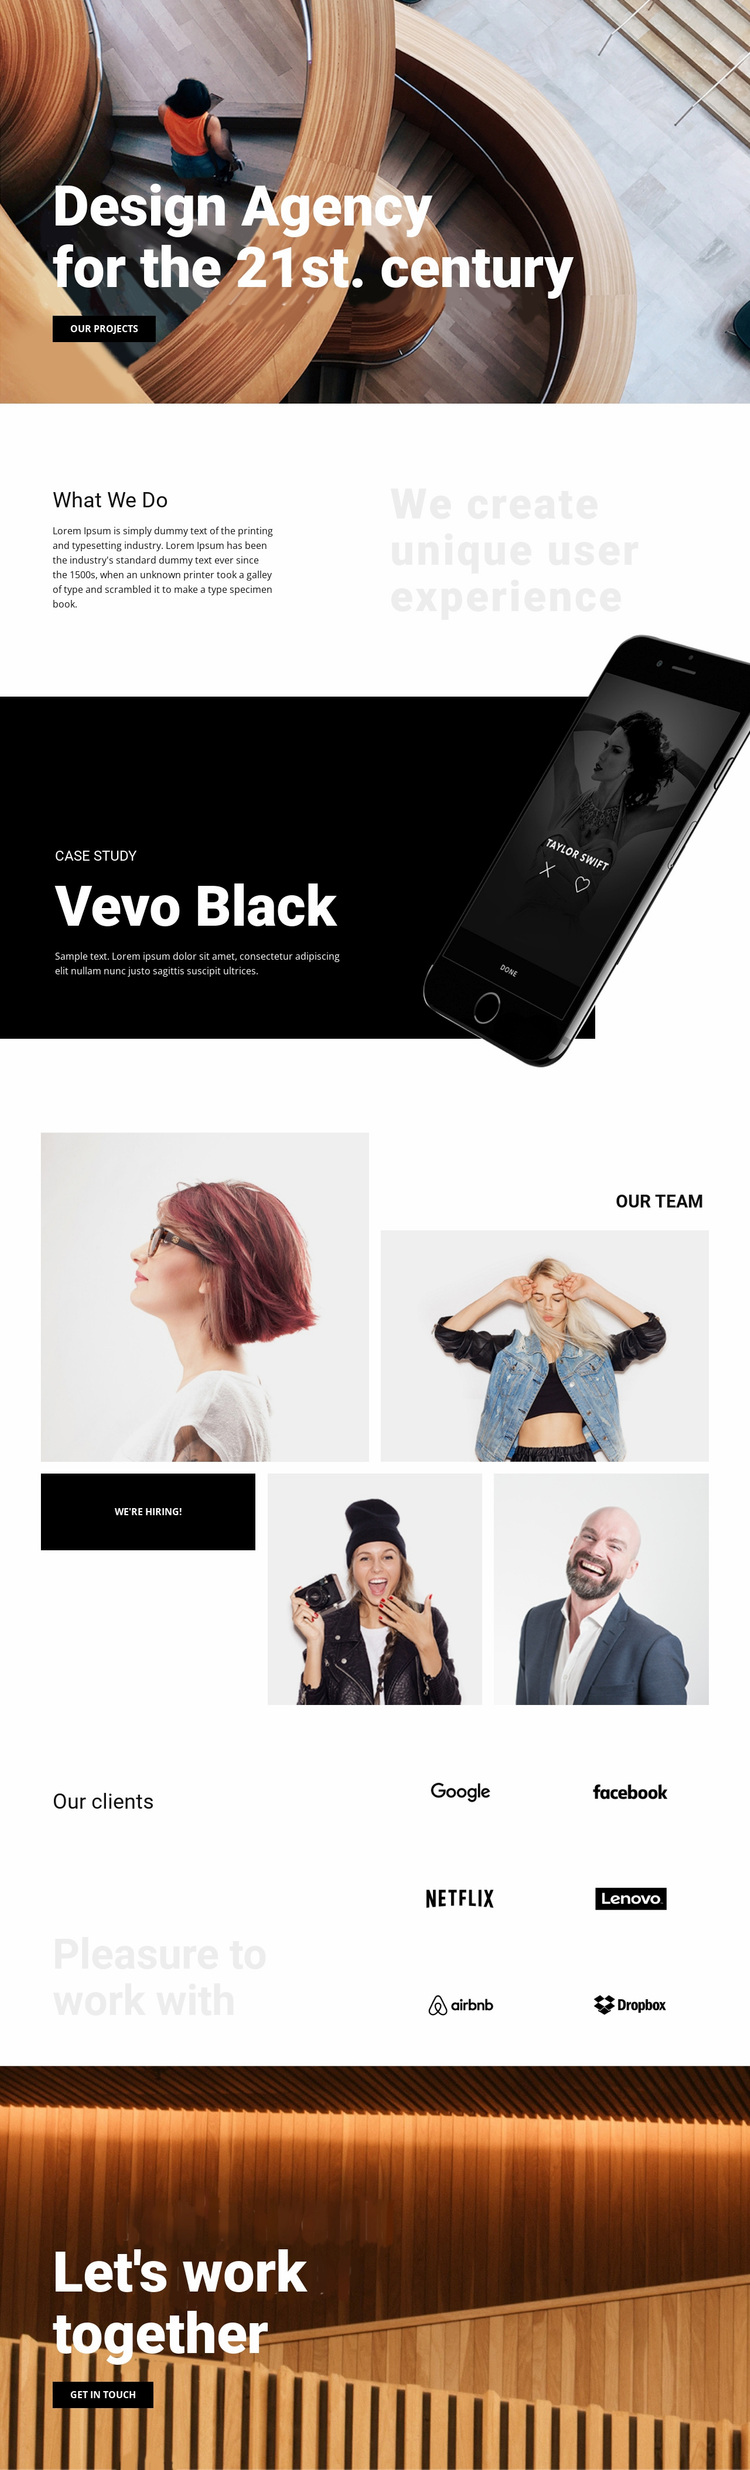 Our work is your success Website Design